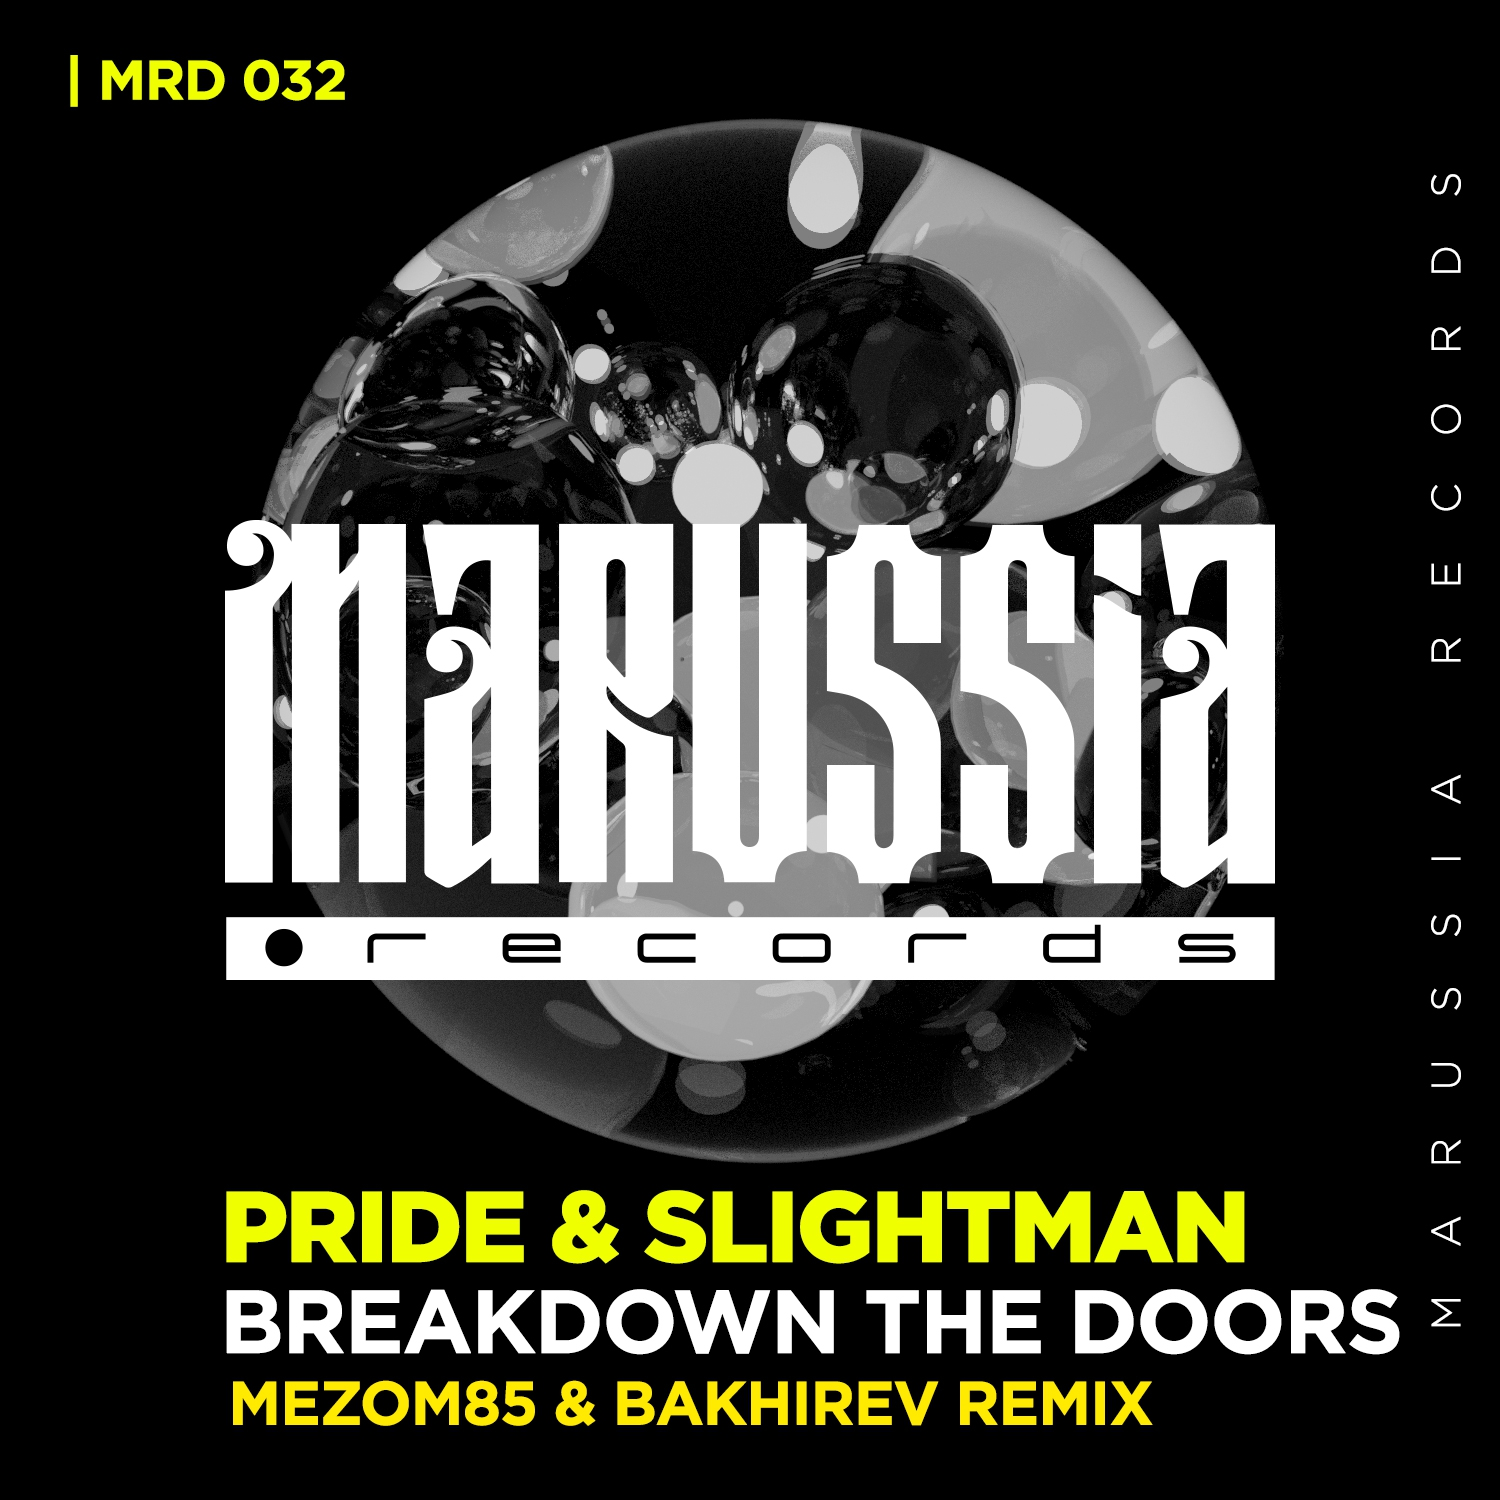 Pride & Slightman - Breakdown The Doors (MEZOM 85 & BAKHIREV RADIO REMIX) ()